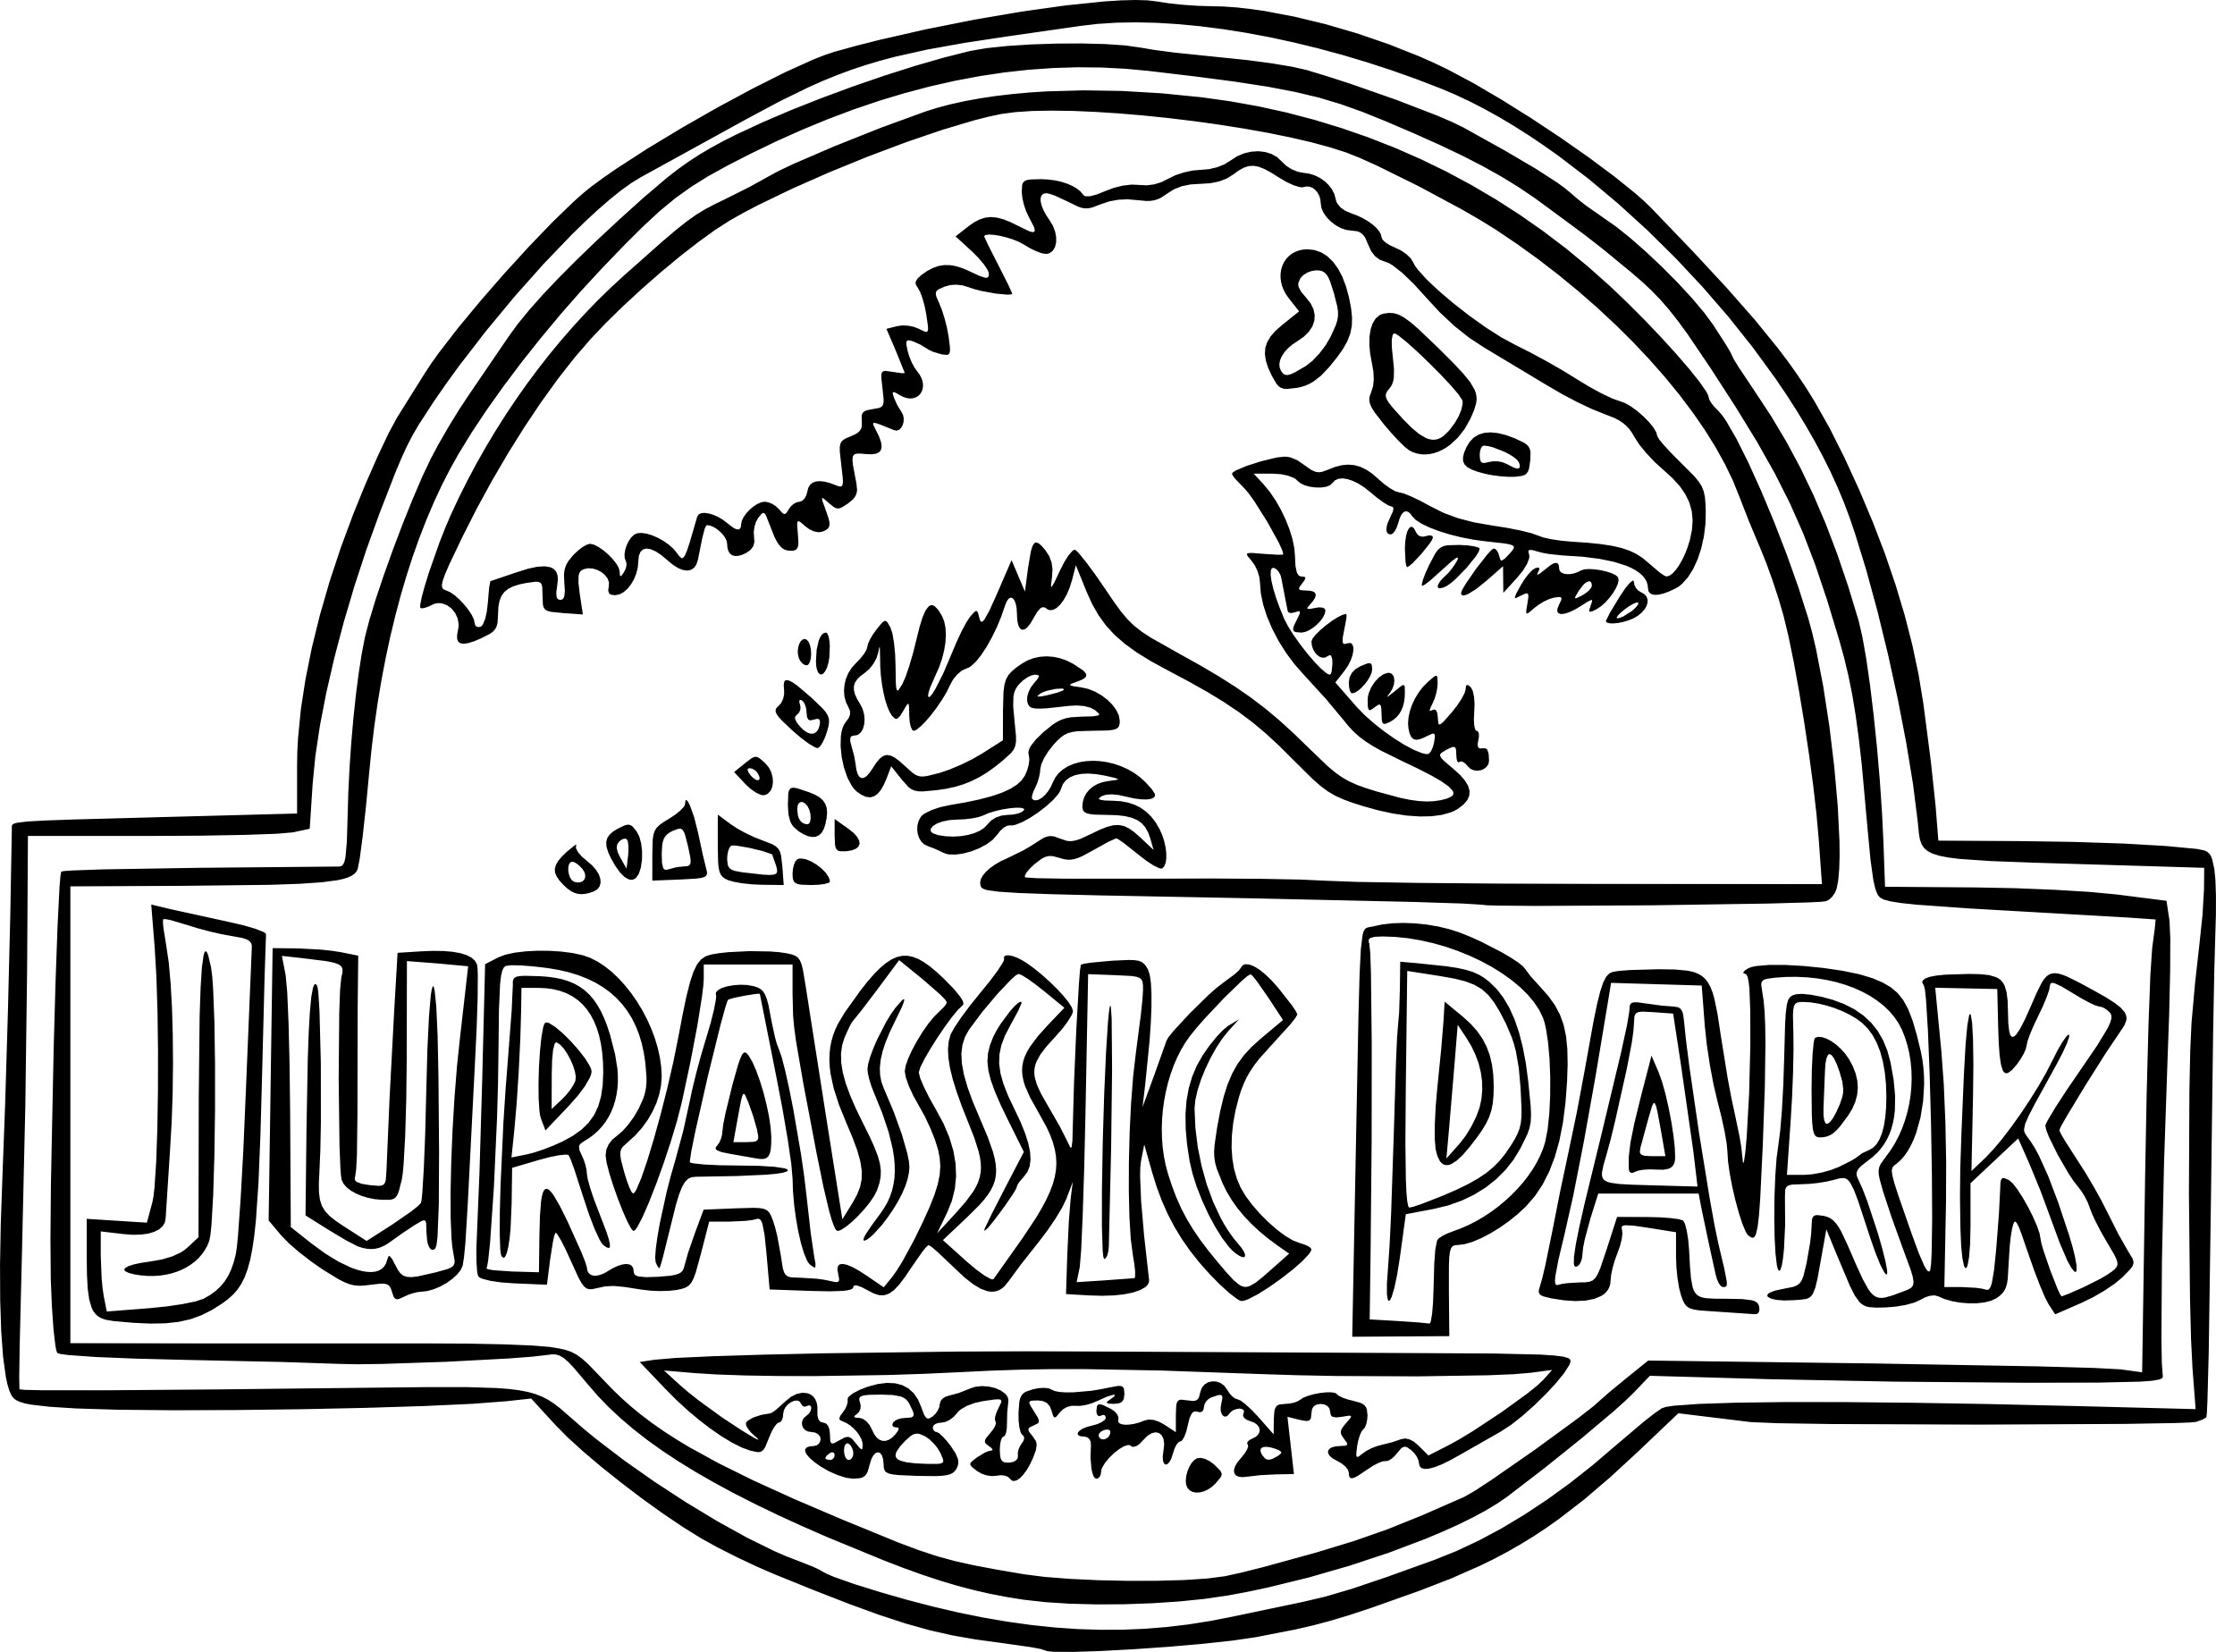 Jurassic World Coloring Pages - Coloriage Jurassic Park à Imprimer